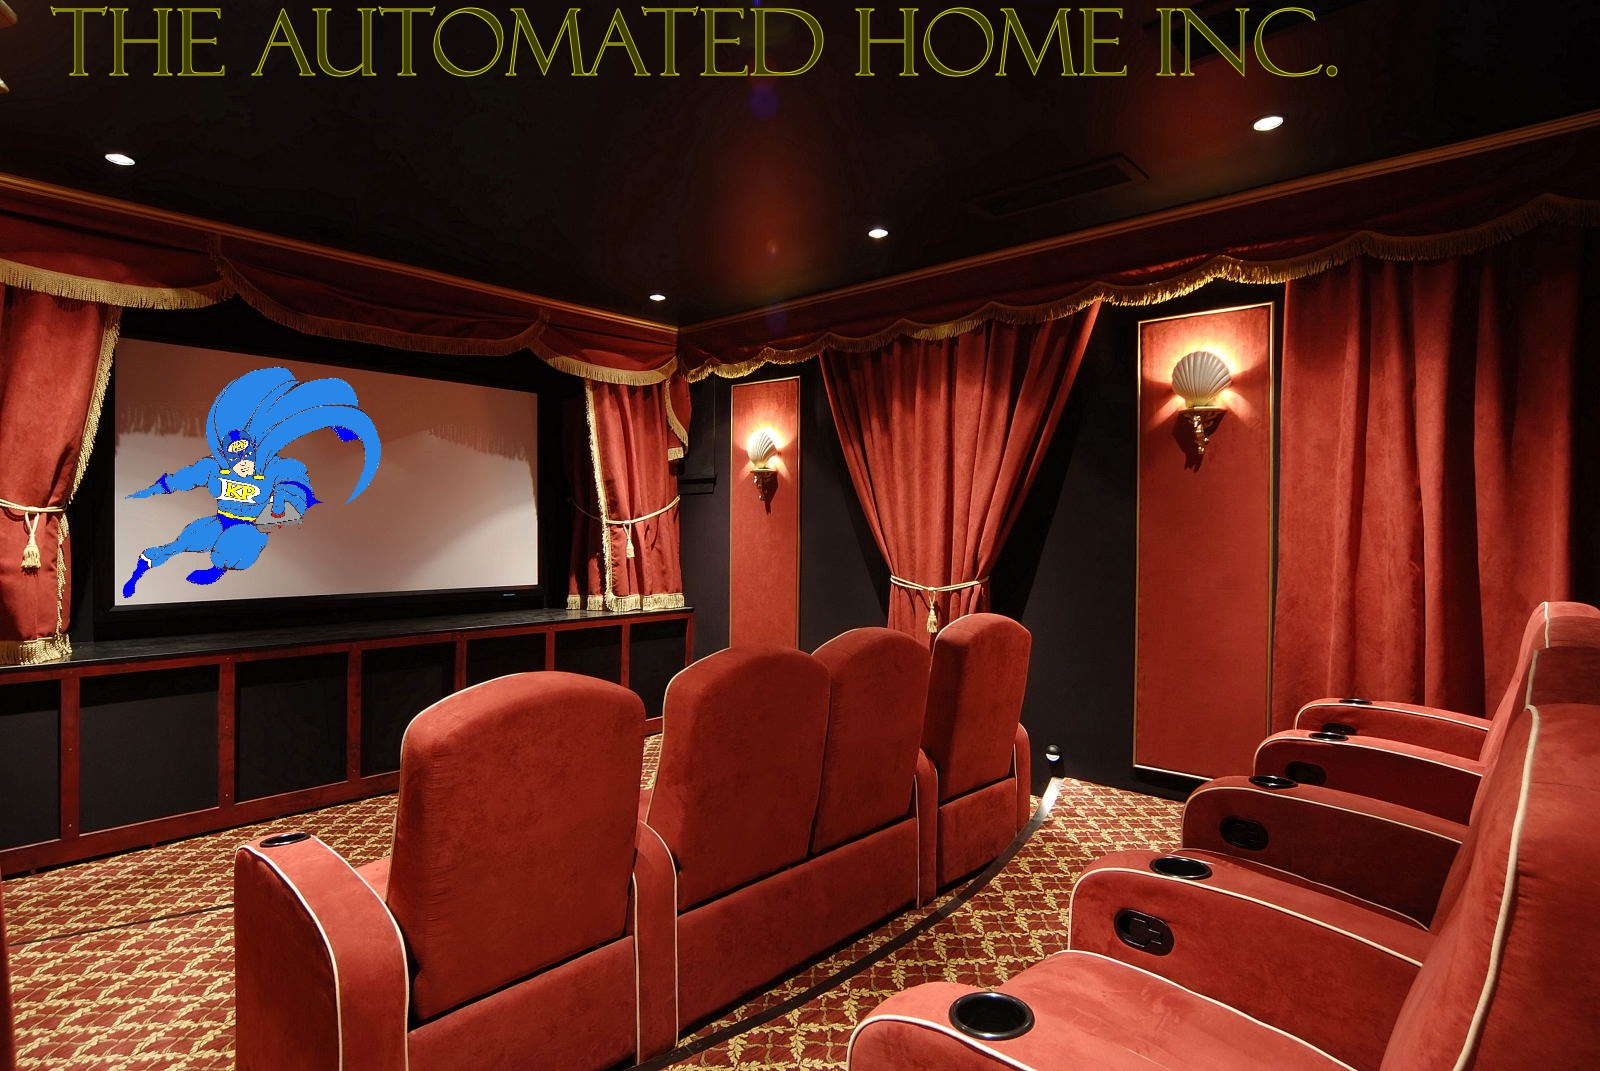 The Automated Home Inc